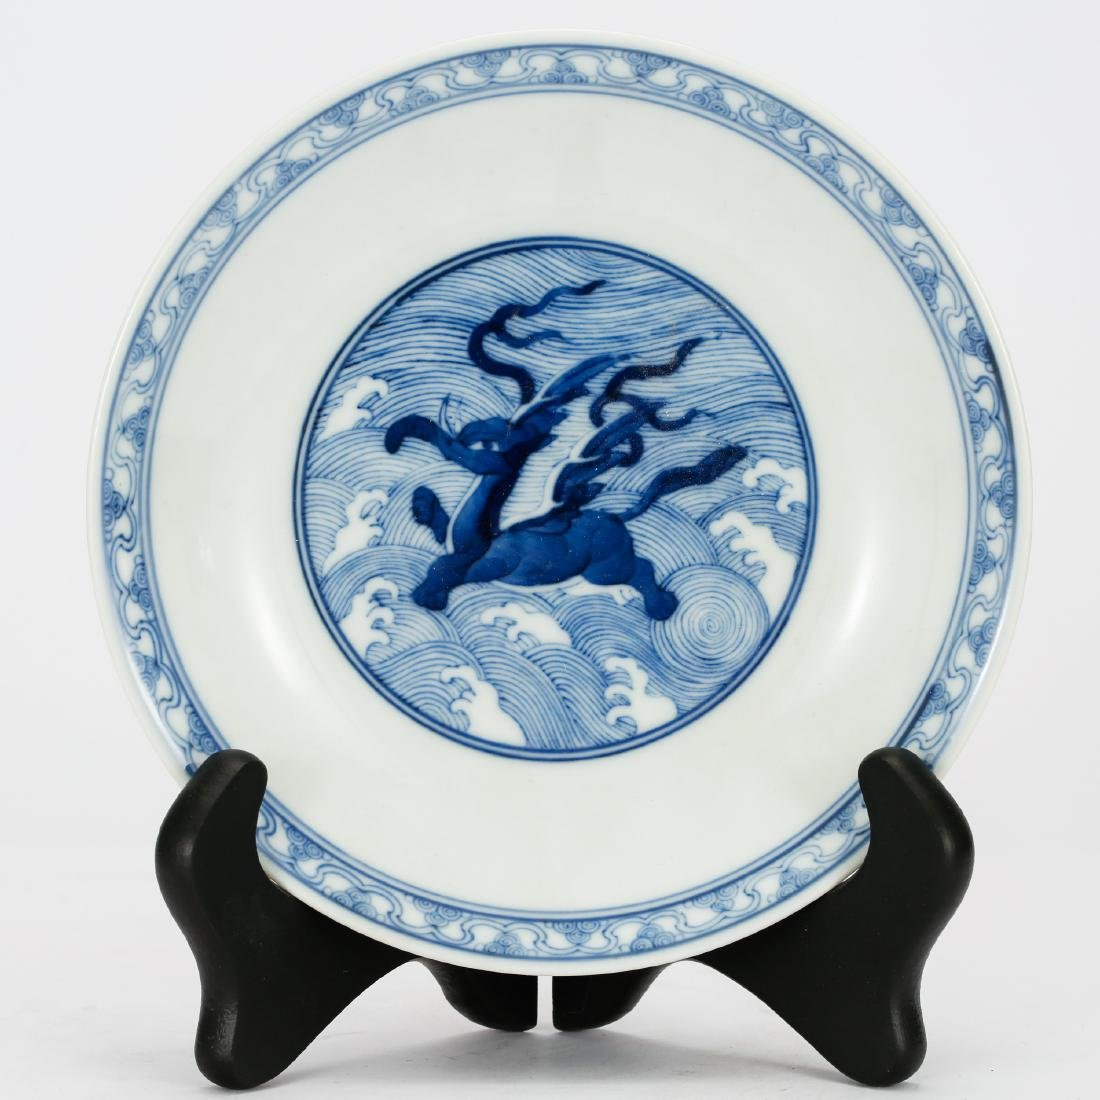 CHINESE BLUE AND WHITE PORCELAIN PLATE QING DYNASTY